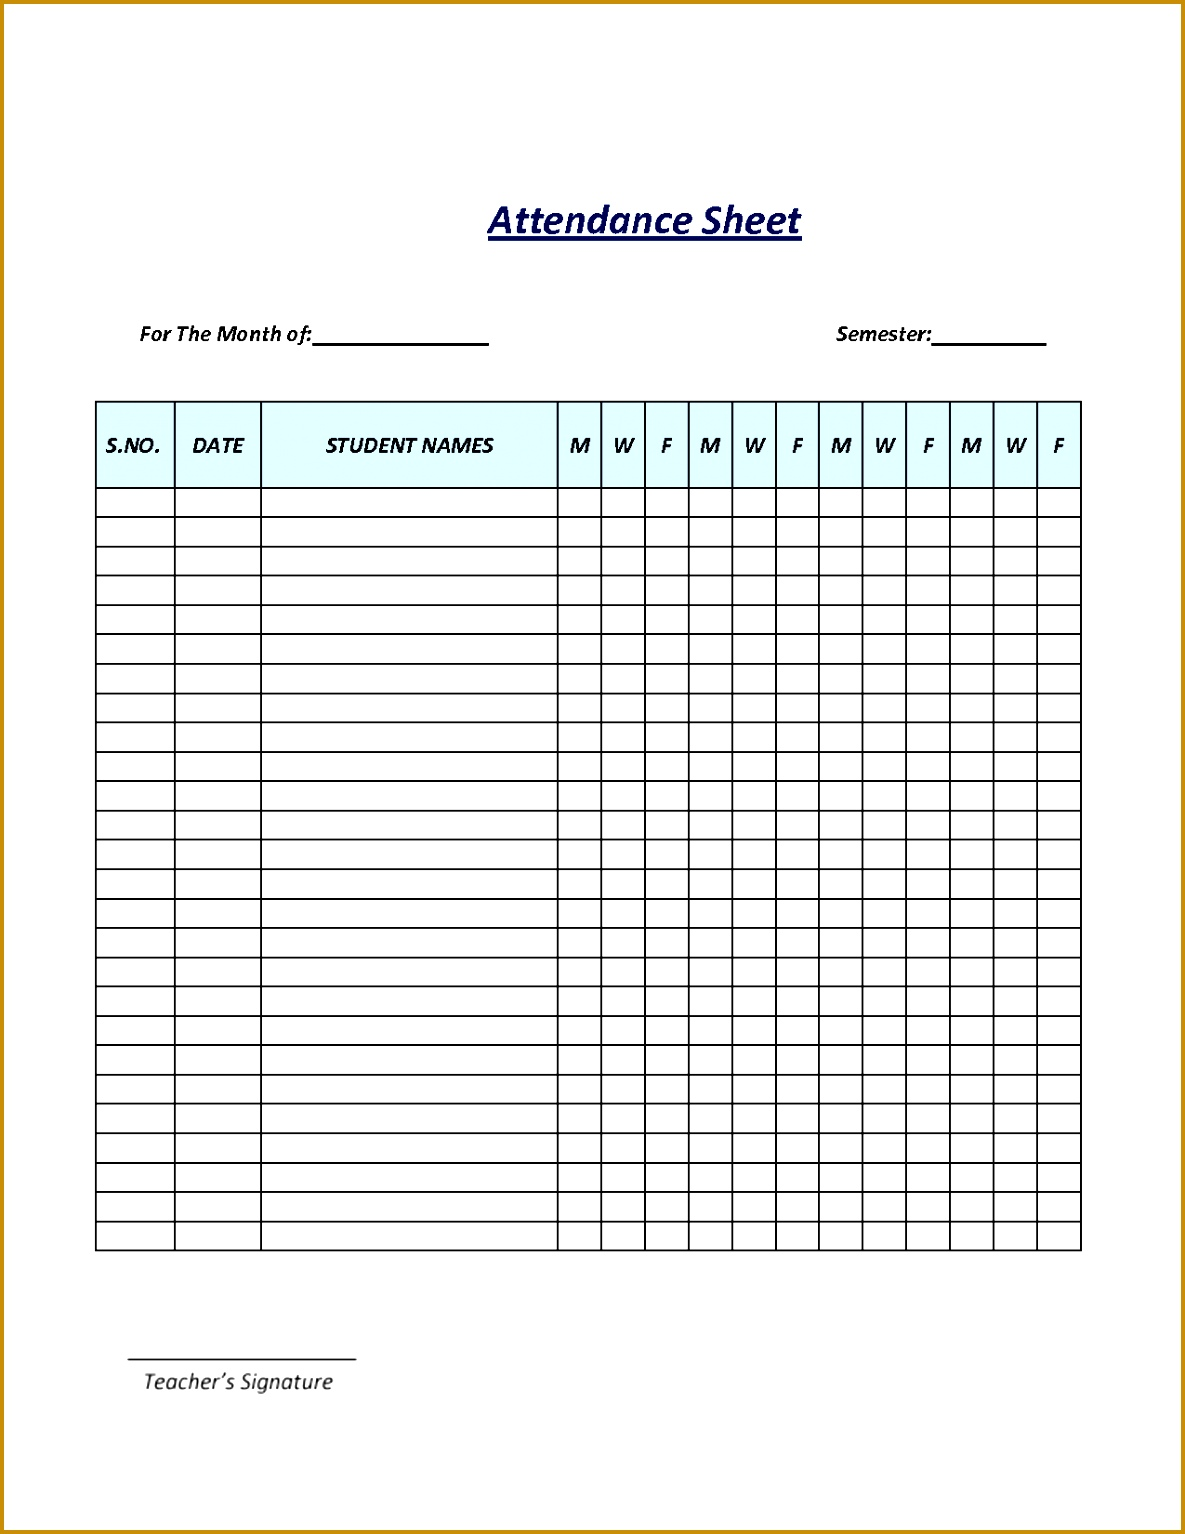 Attendance Template Word General Liability Waiver Printable 7 Best Sheet Free Employee Post 15341185